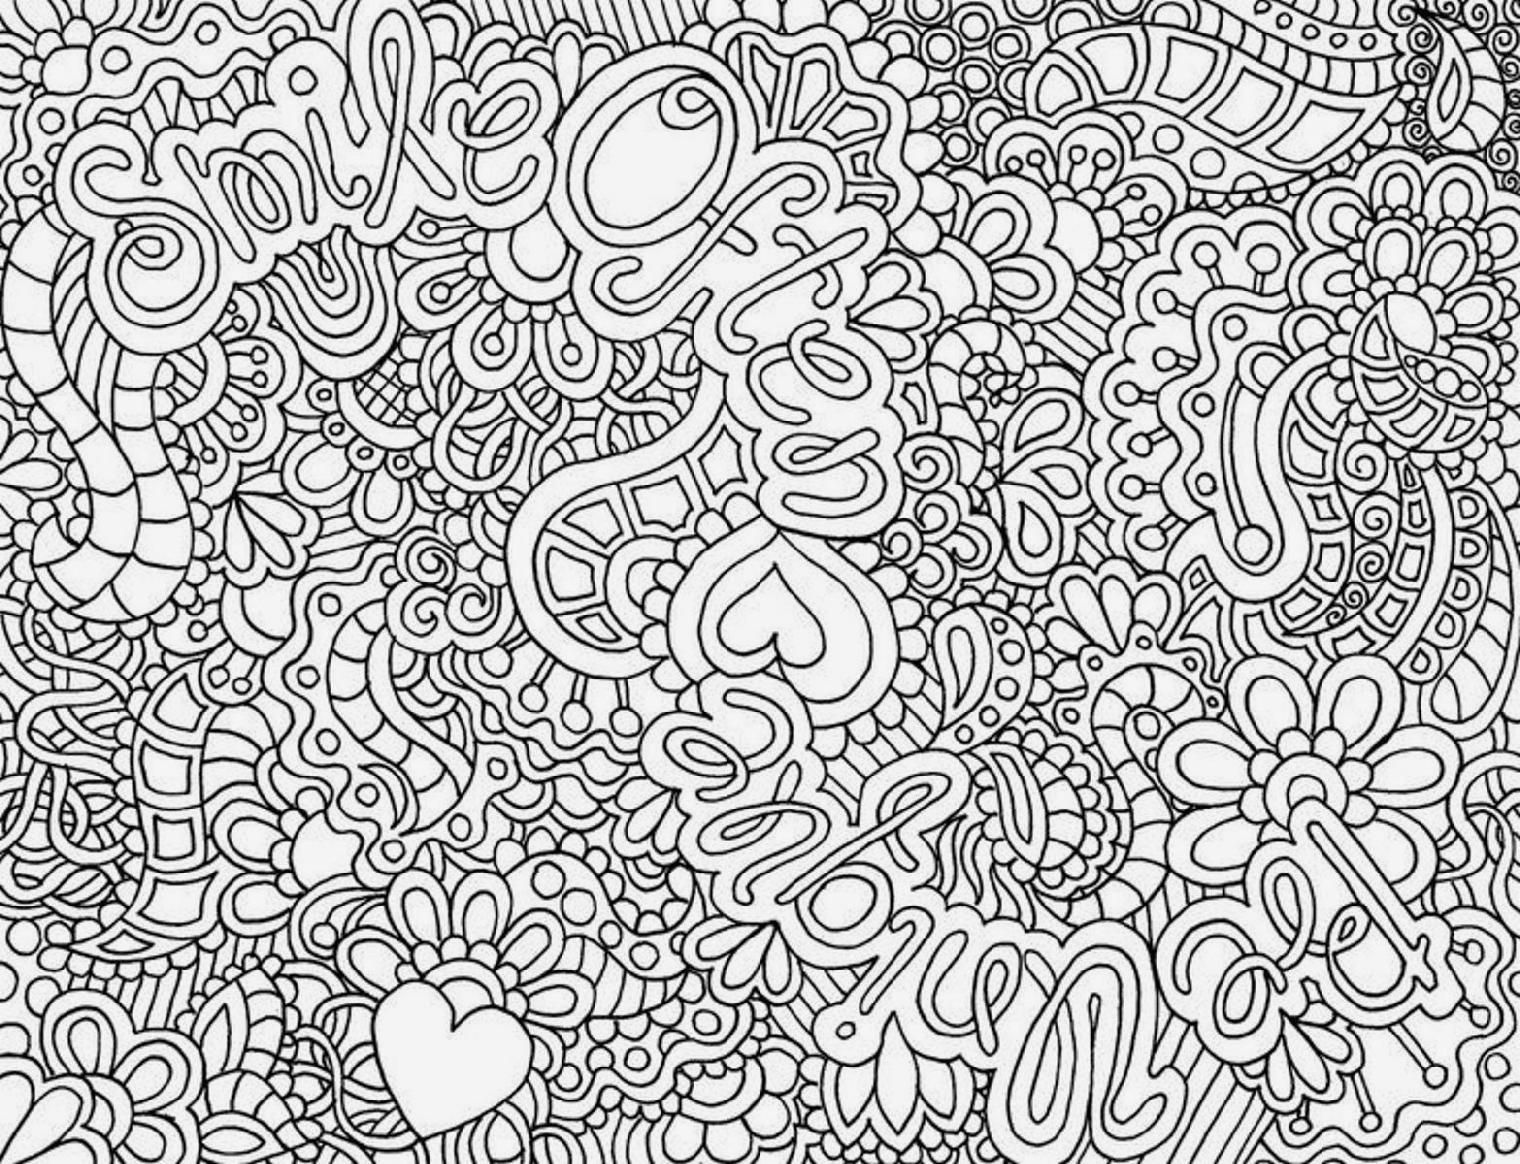 Online coloring sheets for adults - These Free Printable Coloring Book Pages Of Flowers Provide Hours Of Online And